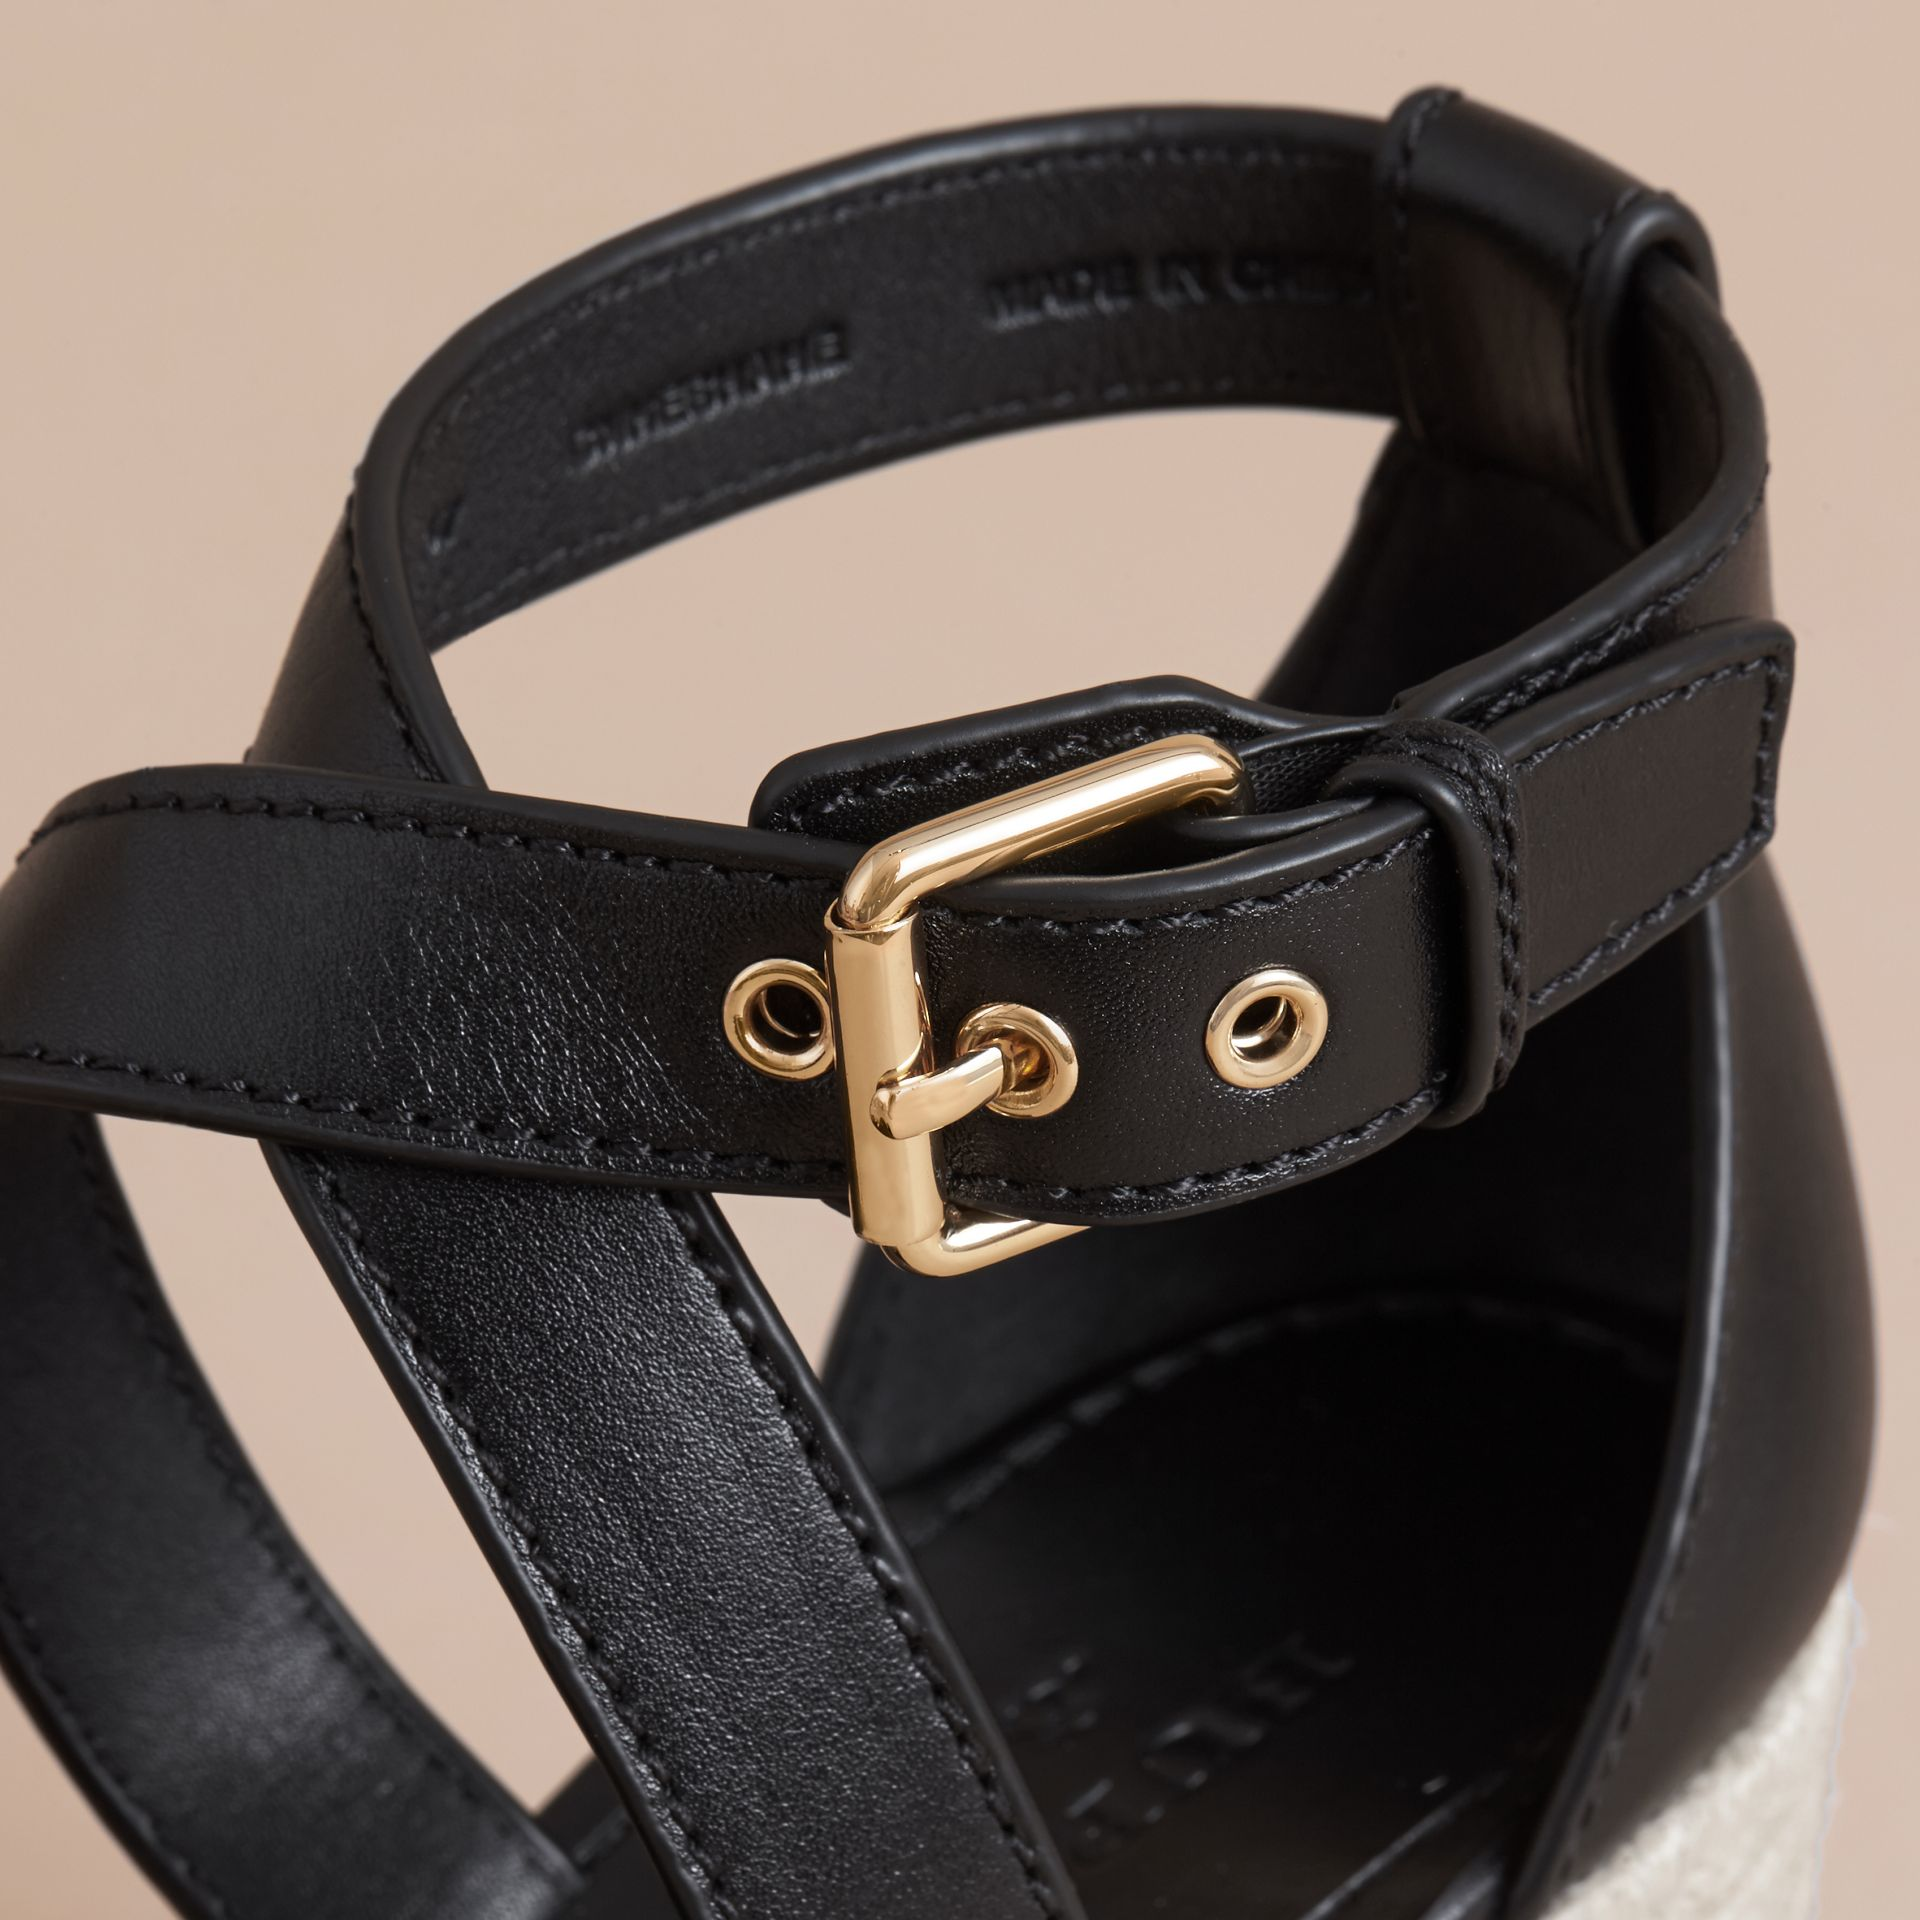 Leather and House Check Platform Espadrille Wedge Sandals in Black - Women | Burberry Singapore - gallery image 2